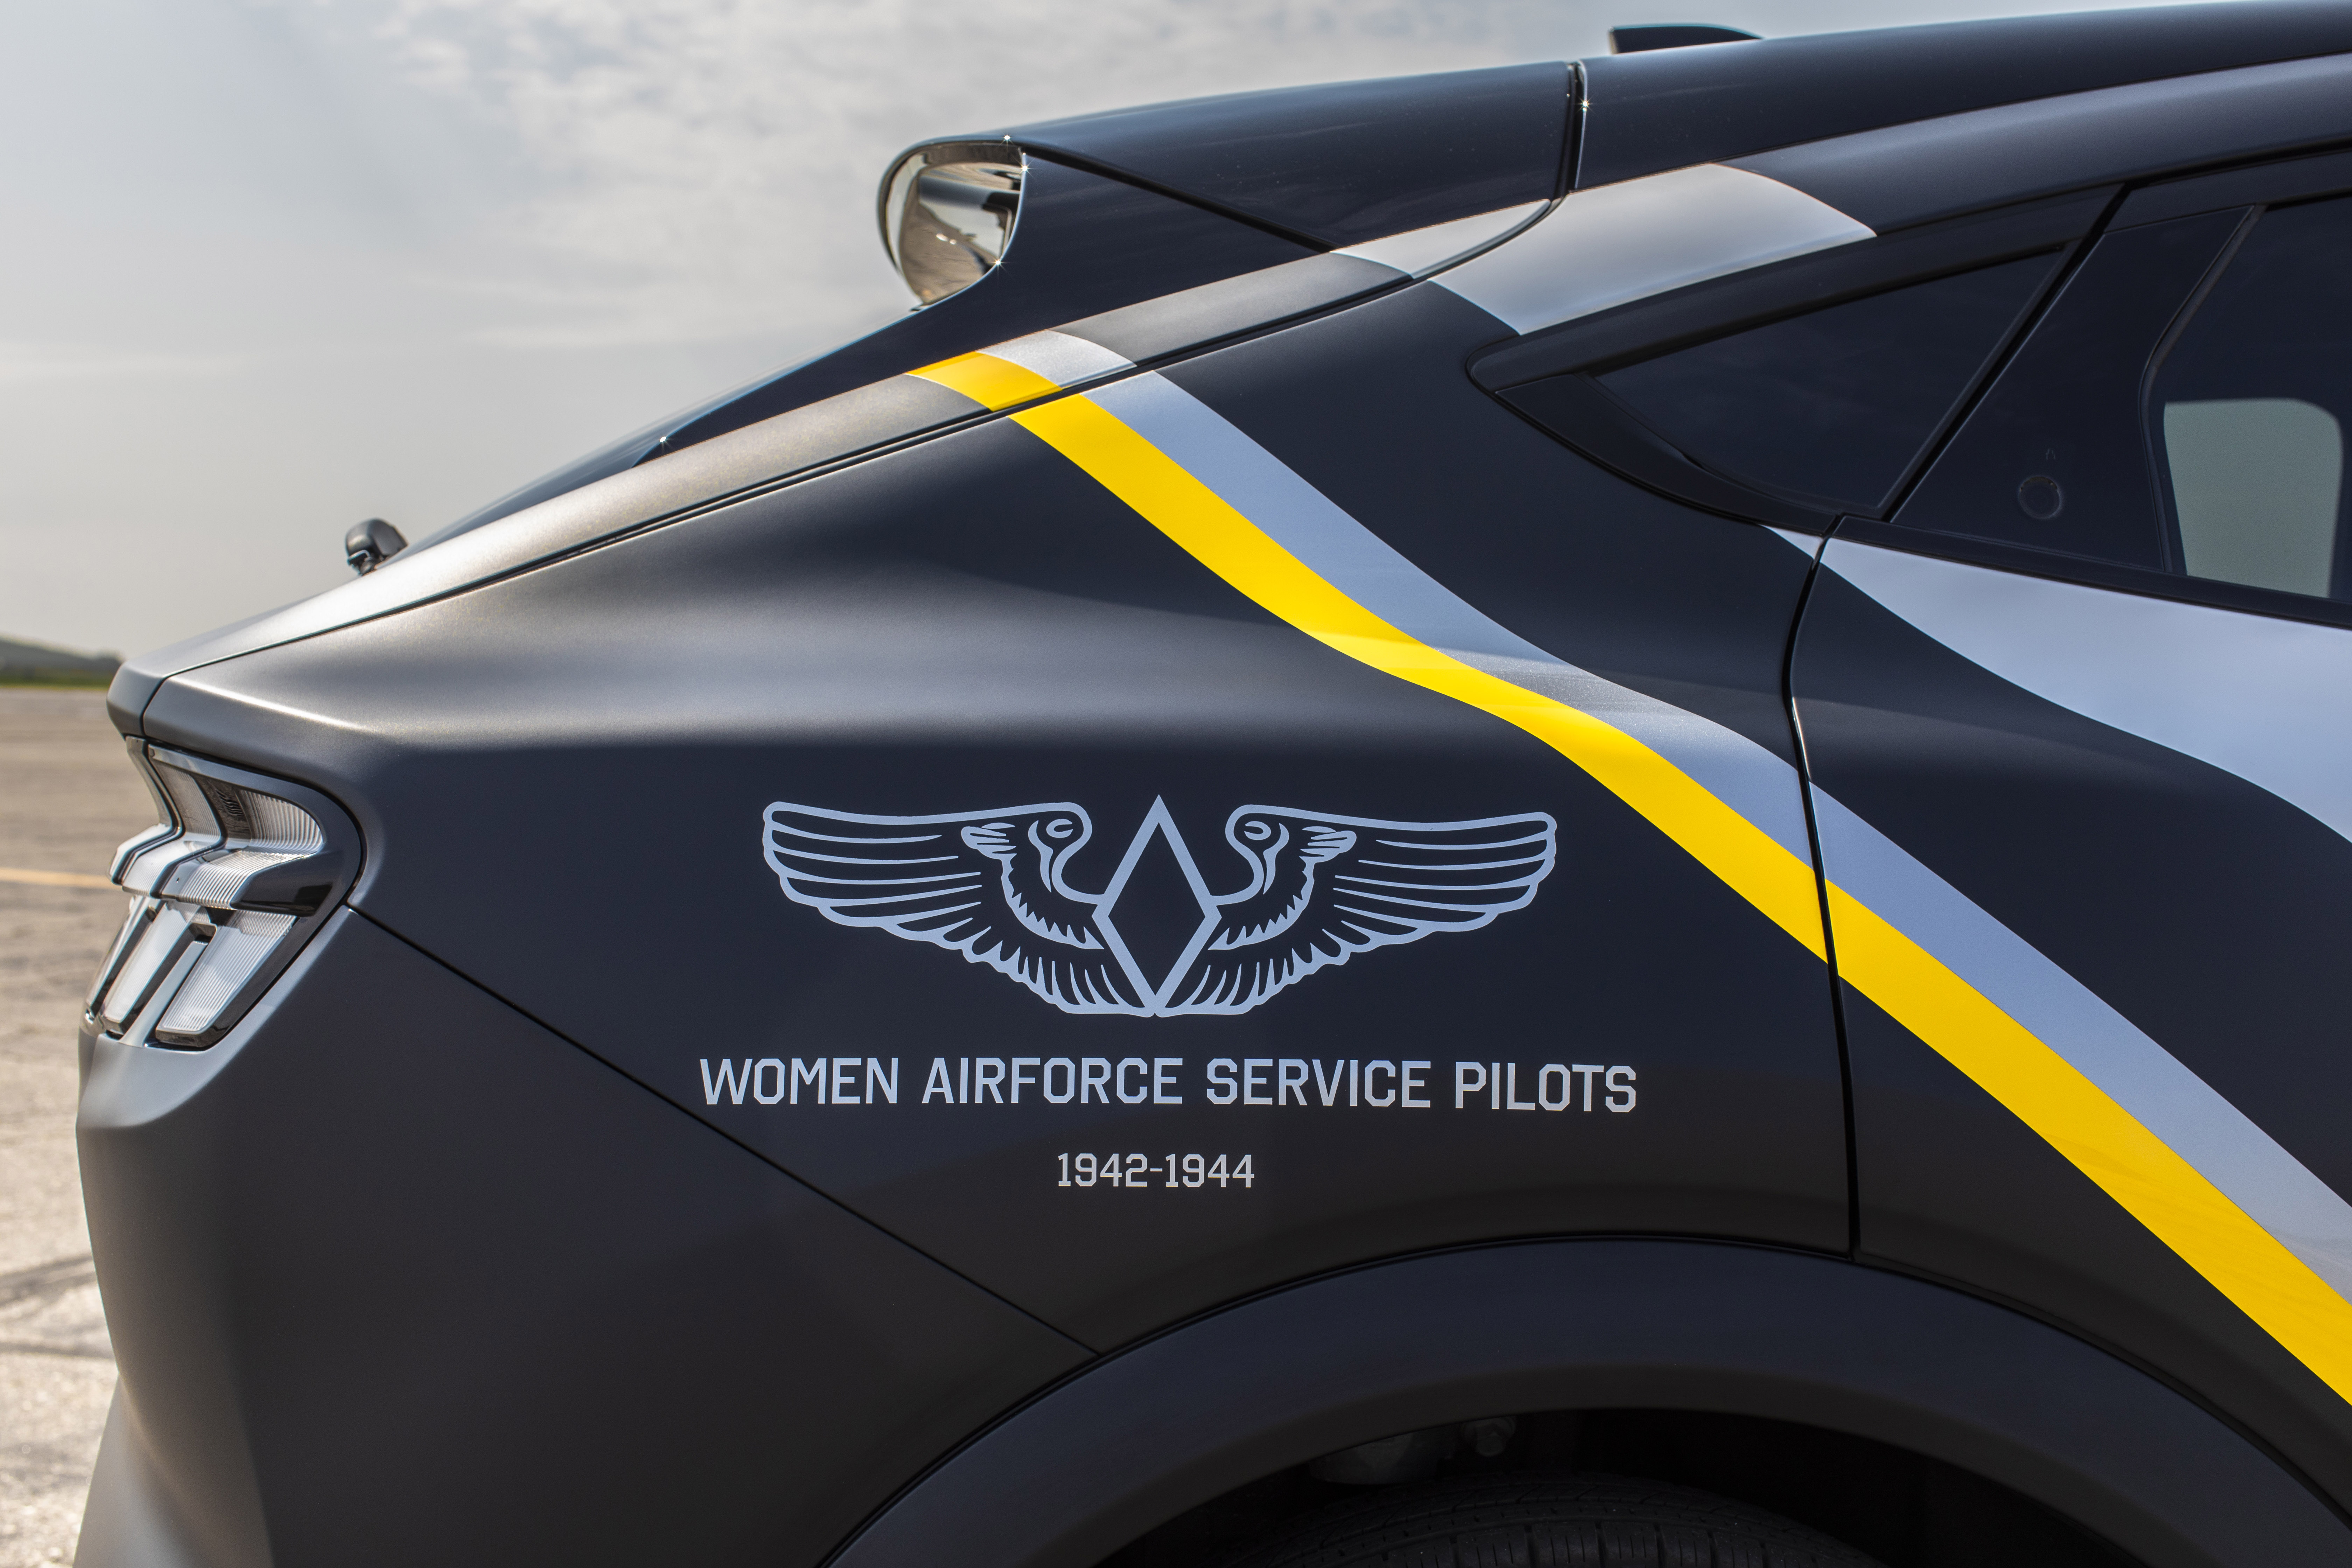 In honor of the humble sacrifices of the Women Airforce Service Pilots, Ford today is announcing a one-of-one custom 2021 Mustang Mach-E inspired by the volunteer female pilots and the planes they piloted during World War II. It will be auctioned at the 2021 Experimental Aircraft Association (EAA) AirVenture air show on Thursday in Oshkosh, Wisconsin. Concept vehicle shown. Not for sale.